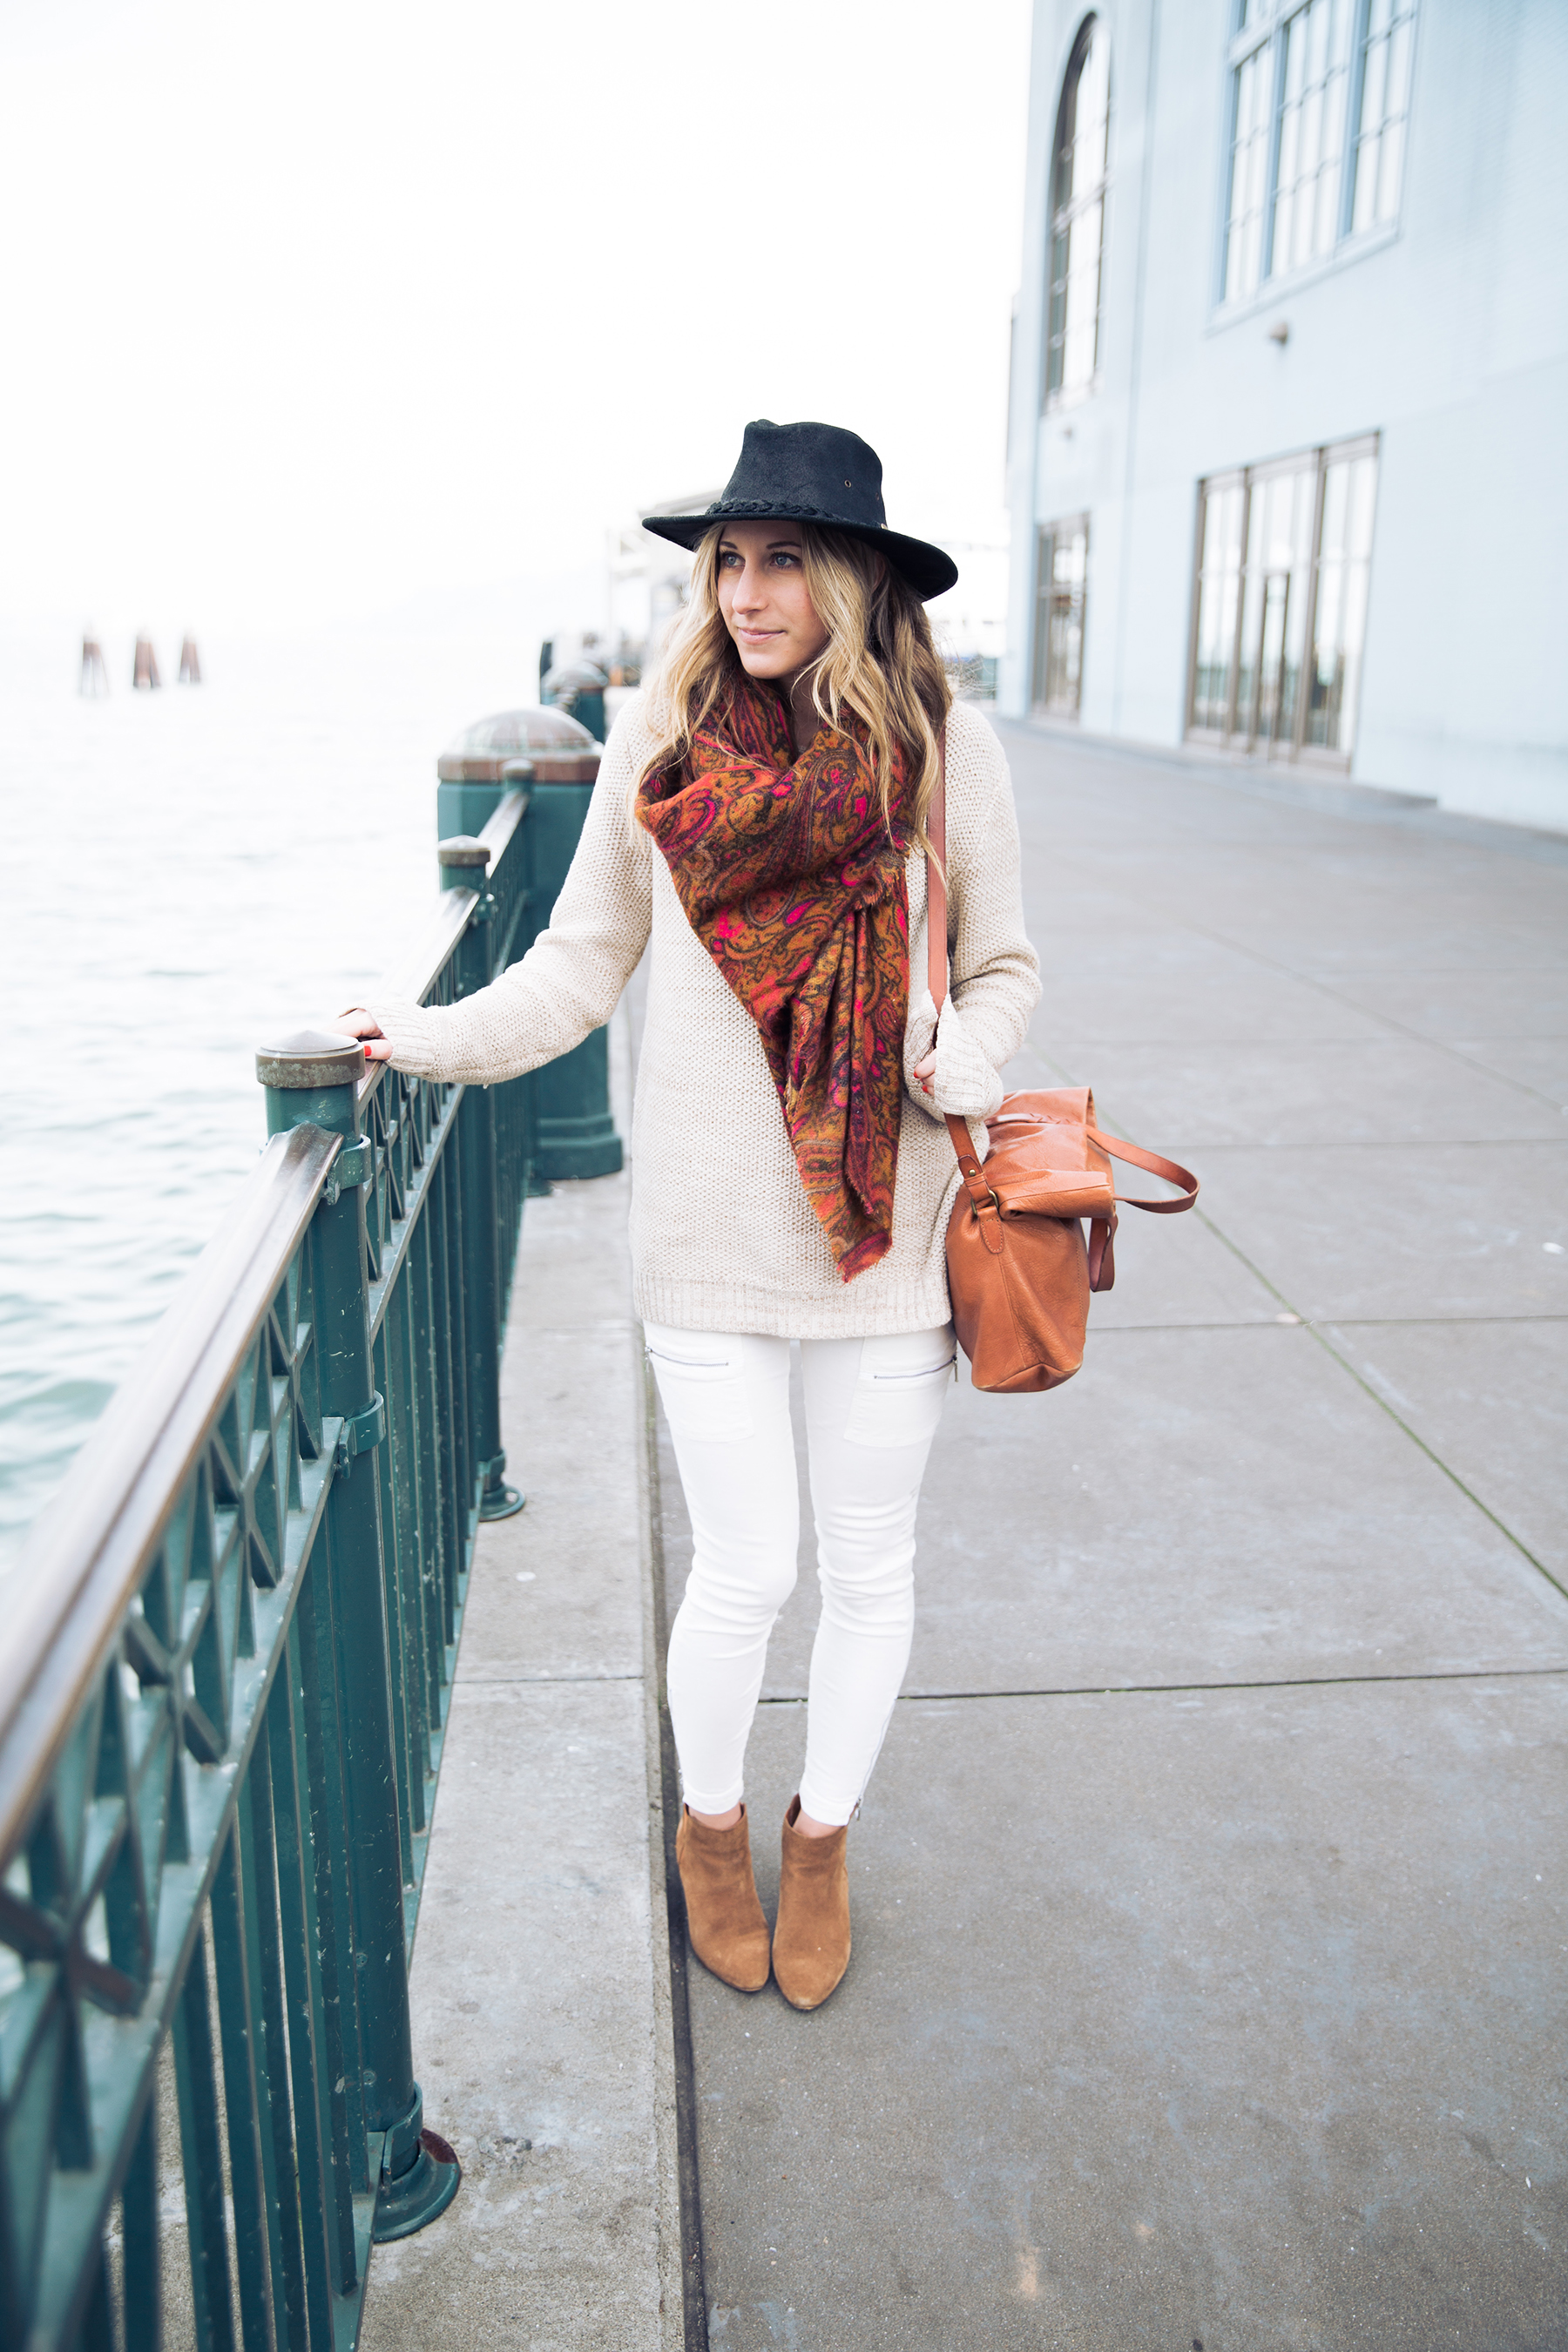 Winter Accessories Fall Use To Transform Outfit Neutrals